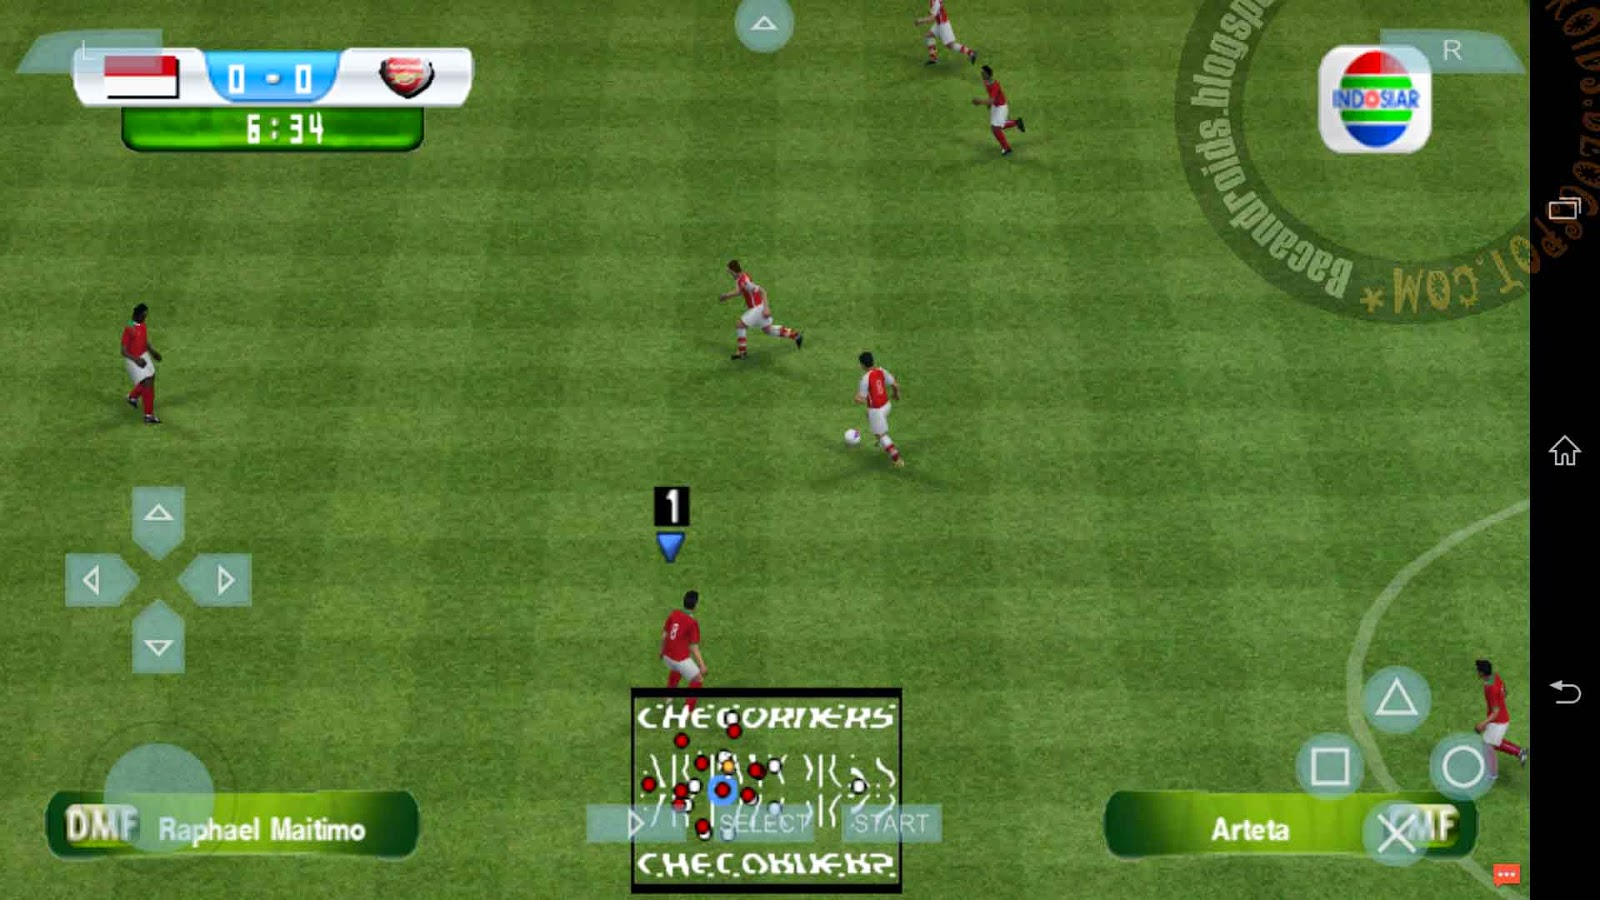 download PES 2015 iso